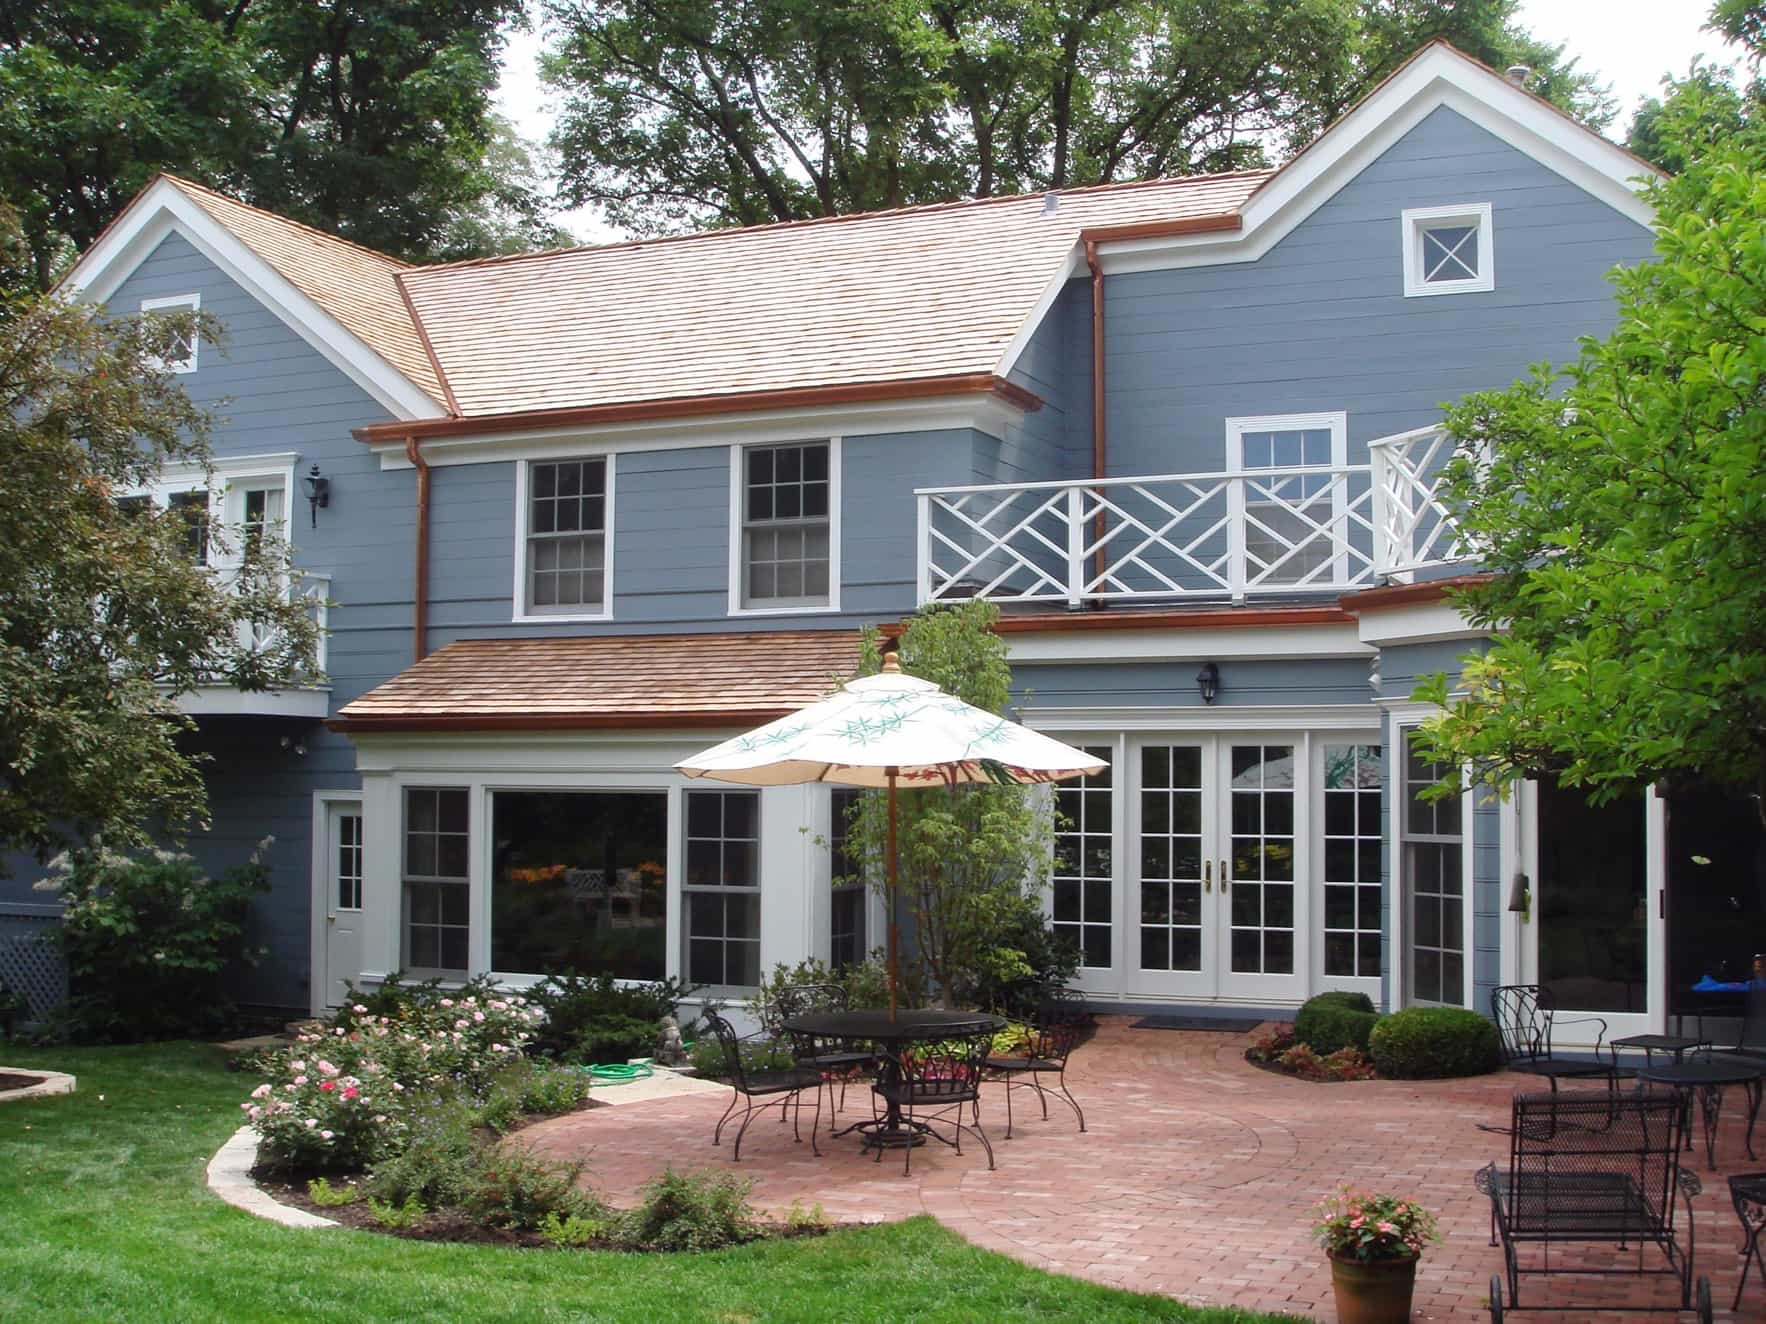 Featured Image of Blue Spanish Home With Small Brick Patio